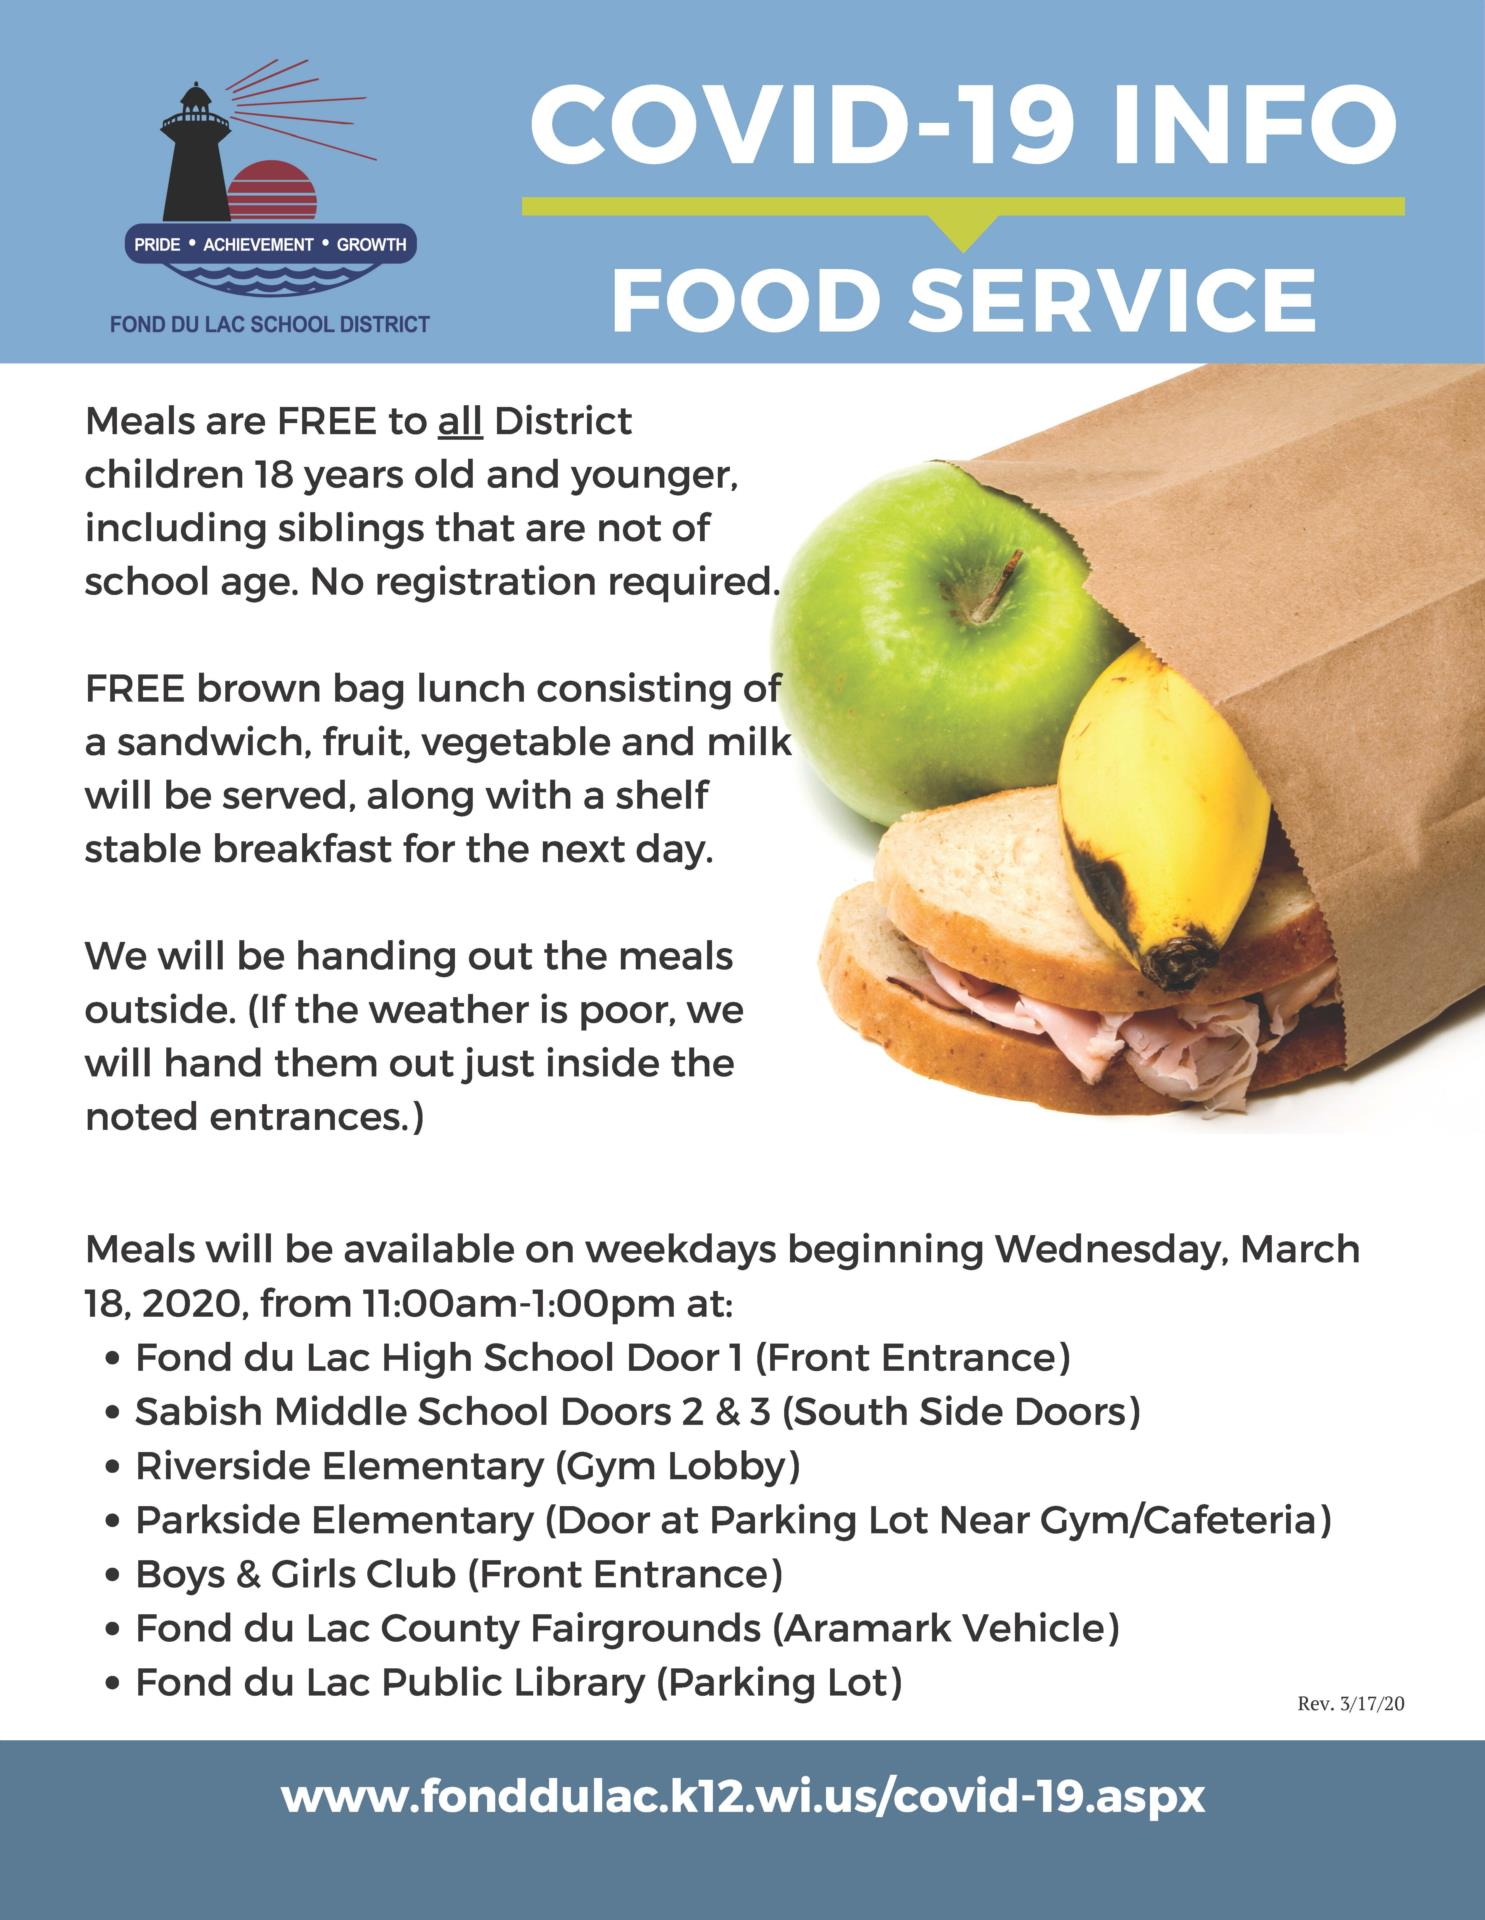 COVID-19 Food Service flyer